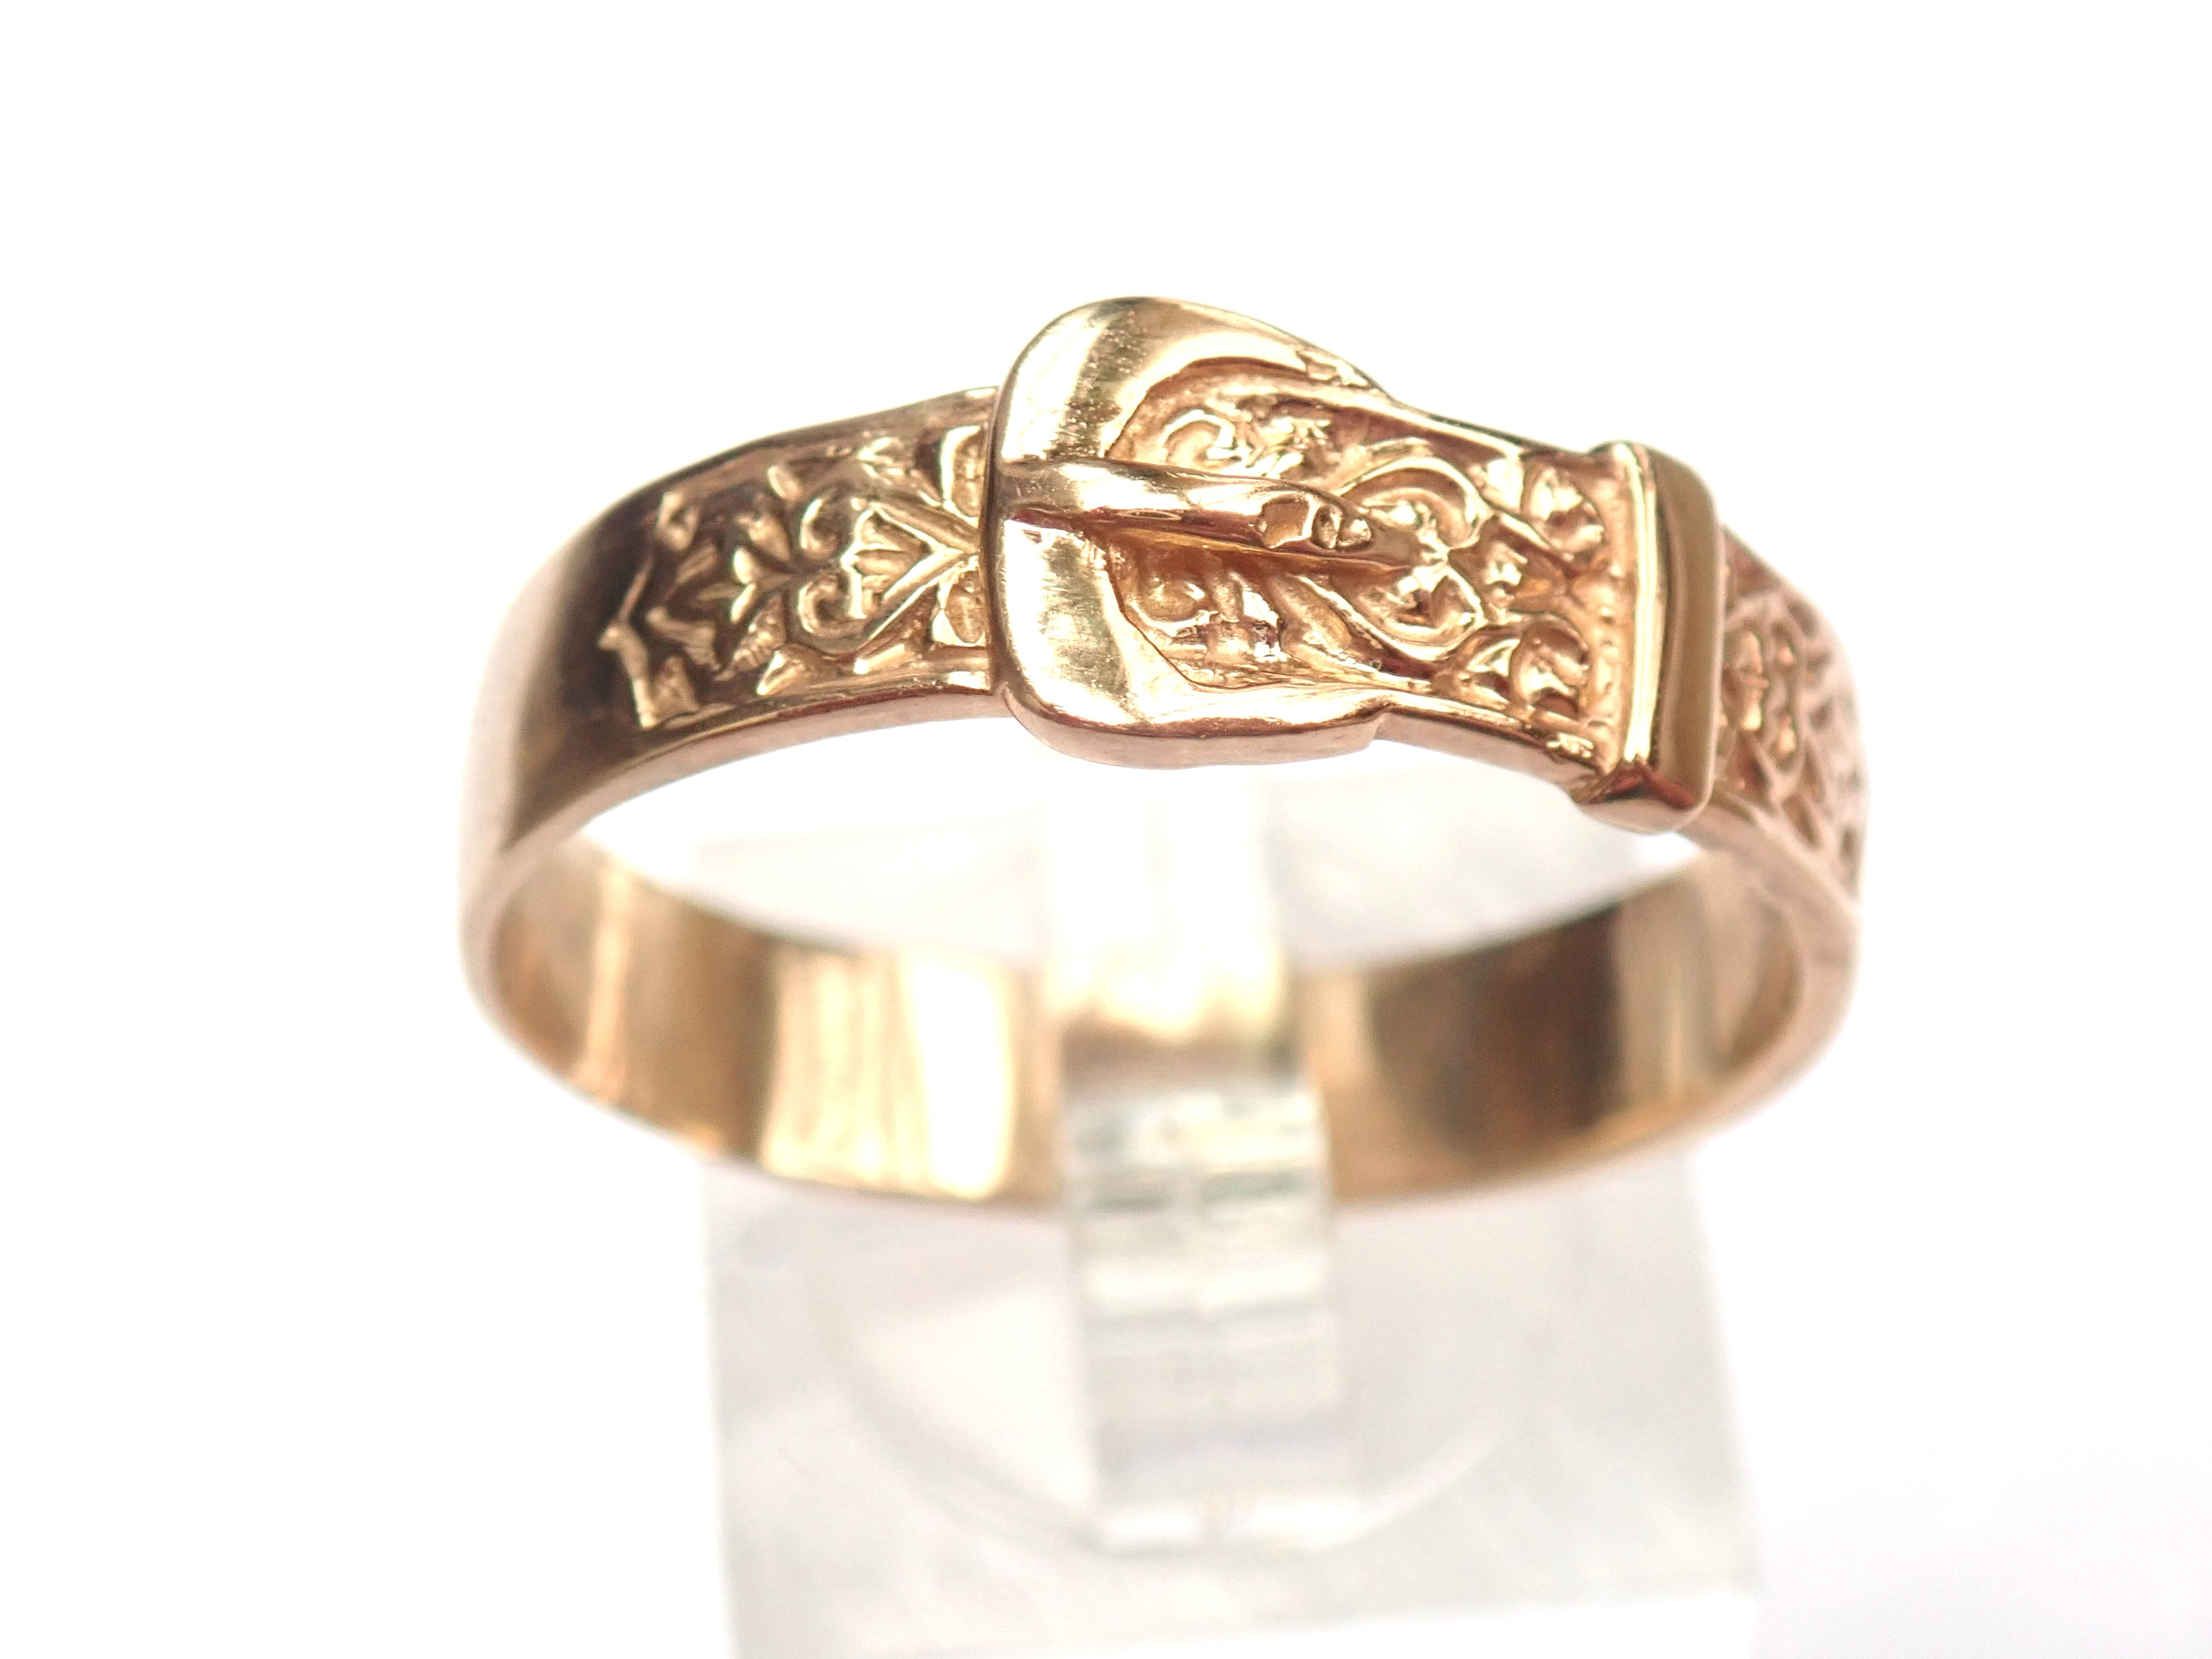 New!! Gold 9ct yellow gold hand finished Buckle Ring. 4.5gms Size Z+1 #185